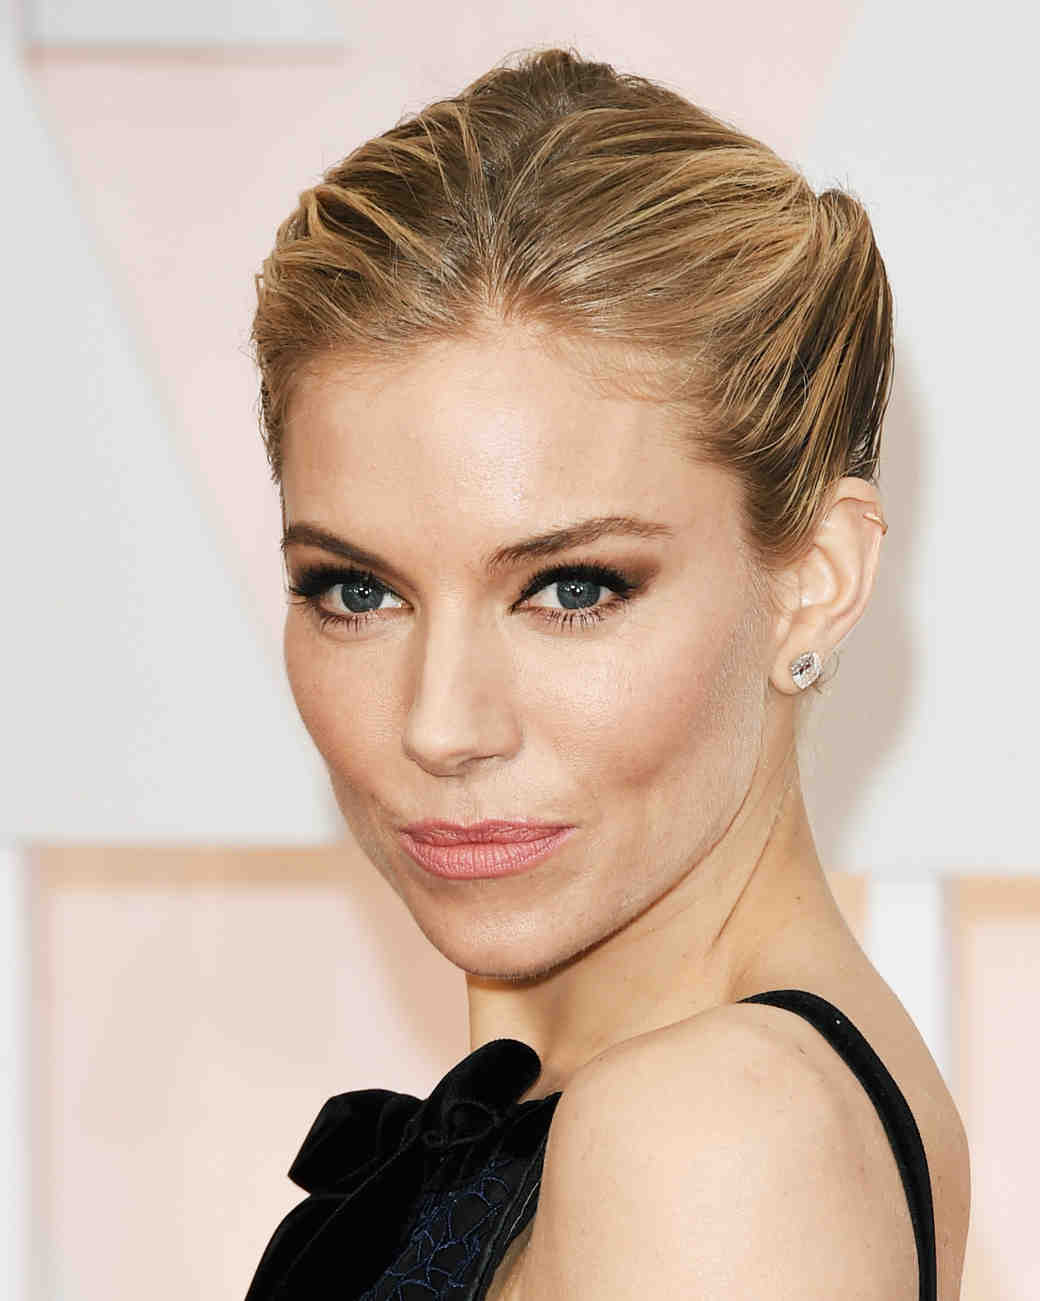 celebrity-wedding-makeup-siennamiller-0915.jpg